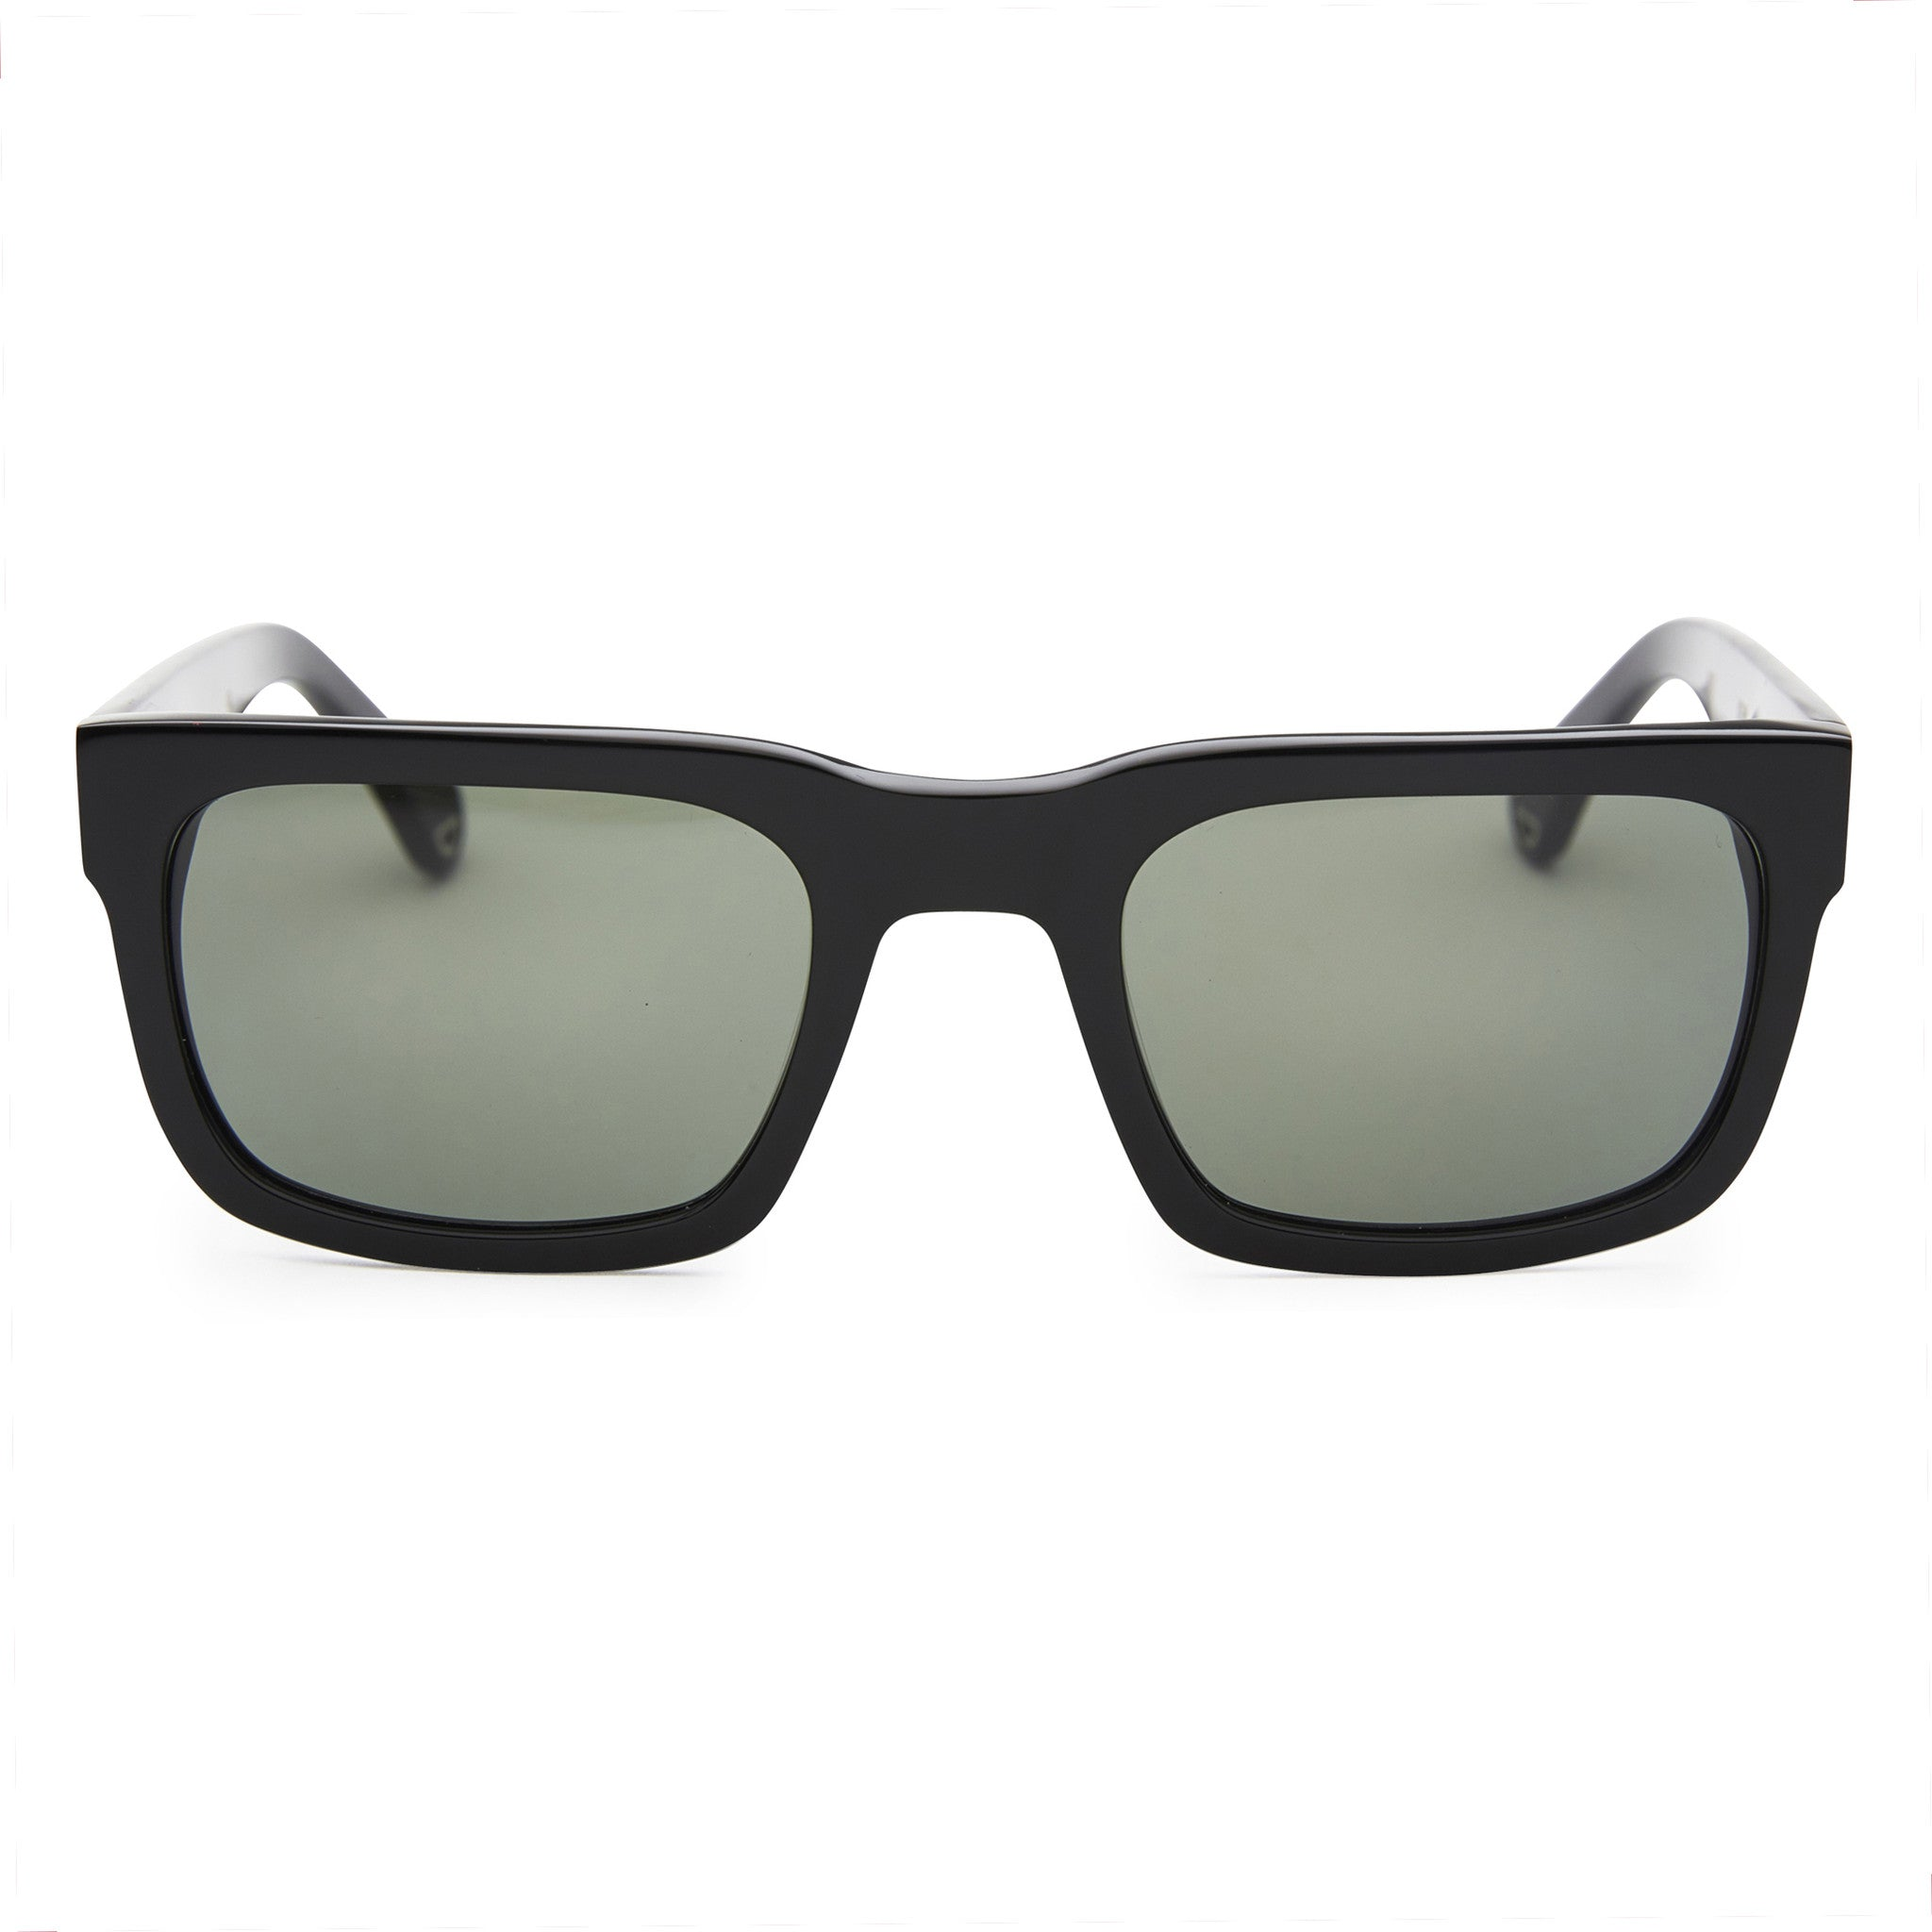 5338162f26 Pacifico Optical Tony - Gloss Black with Grey Lens